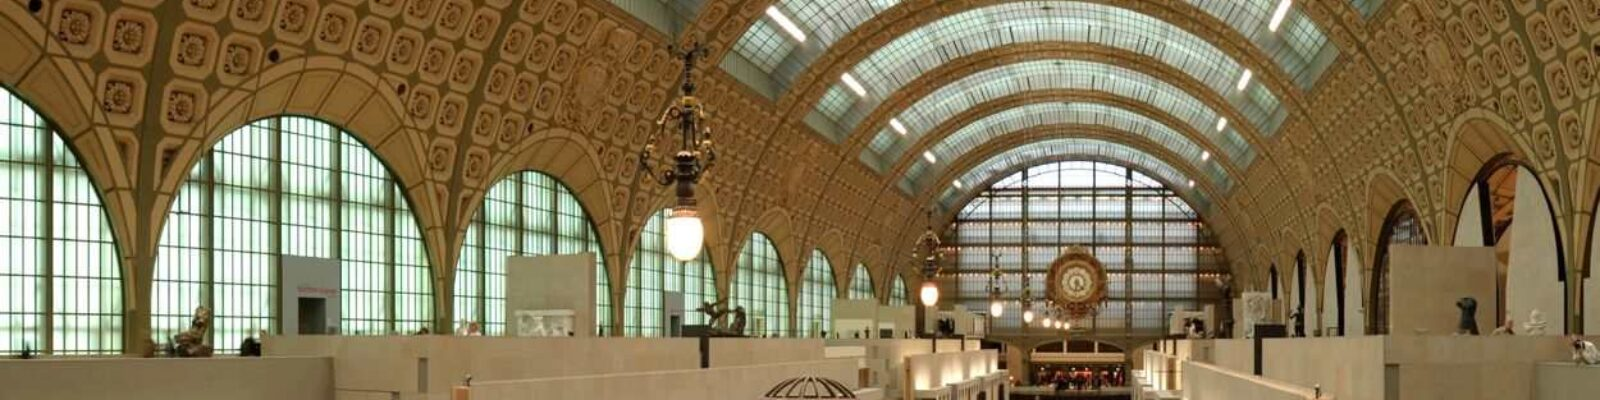 Museo D'orsay vista d'insieme - master architectural light design